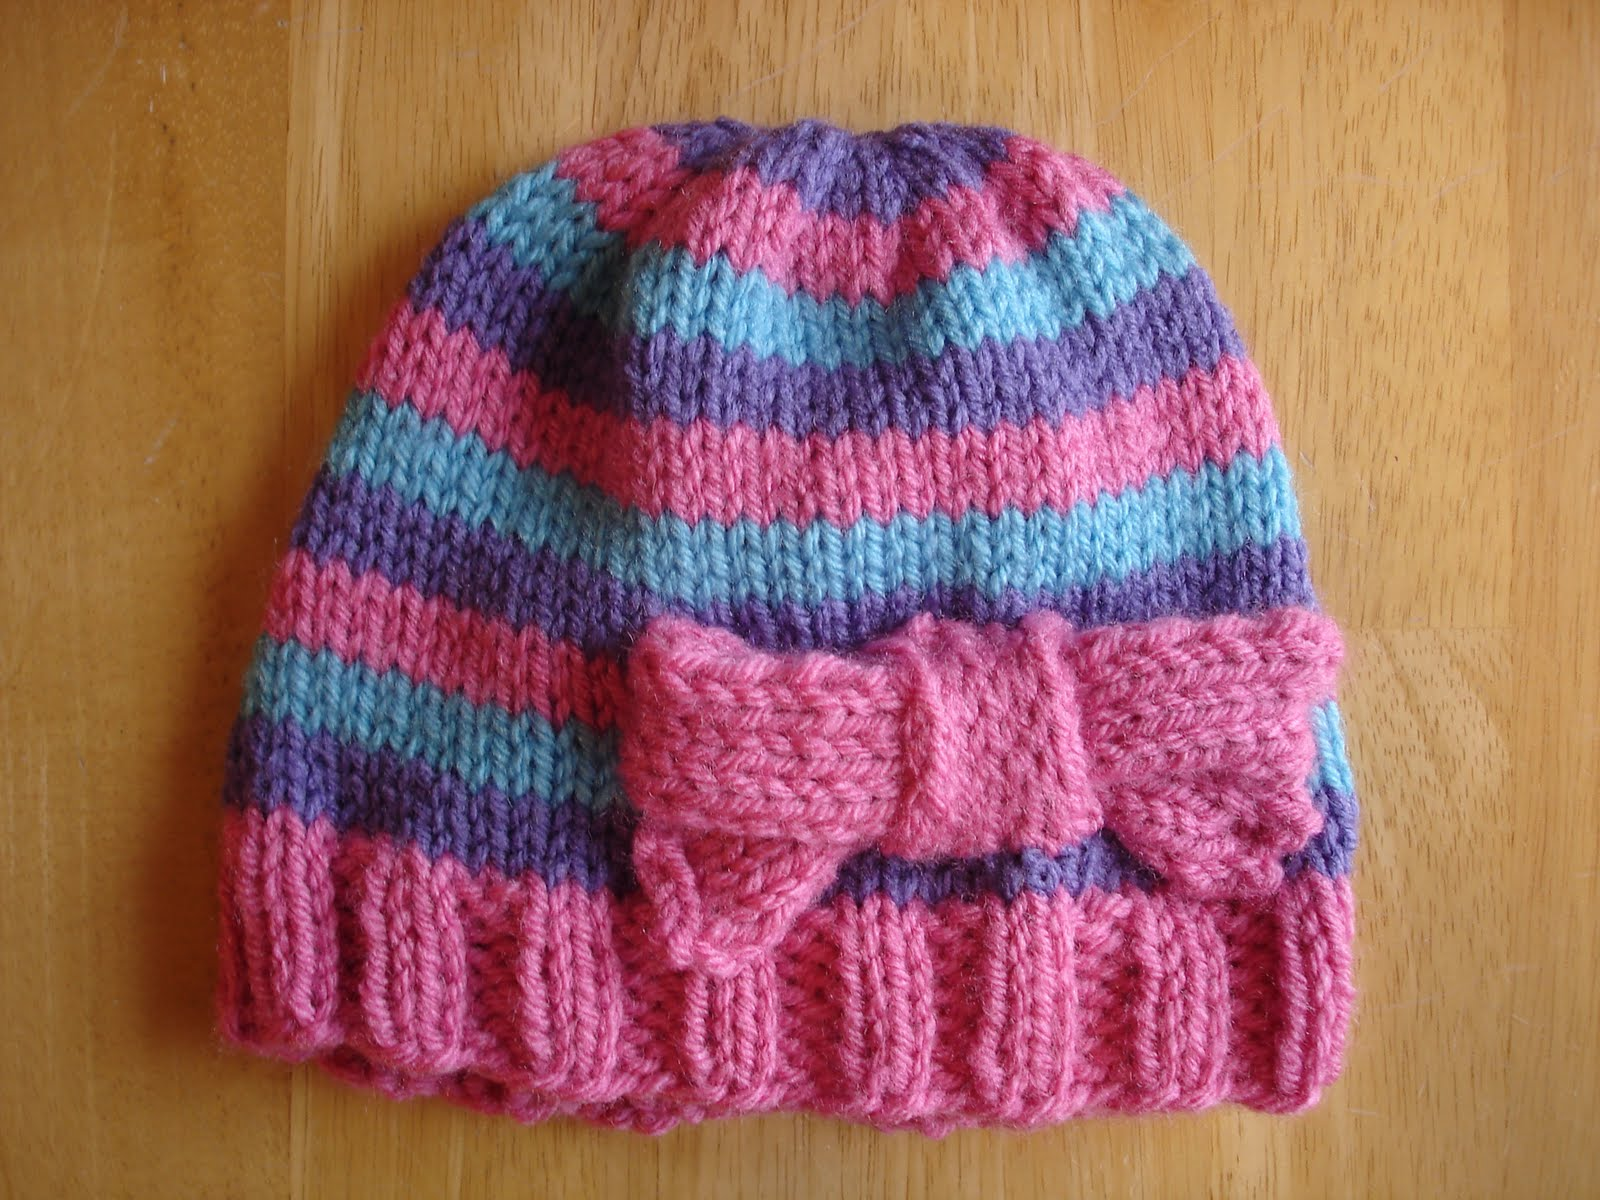 Knitting Pattern For A Toddlers Beanie : Fiber Flux: 10 Great Kids Hats to Knit for Charity